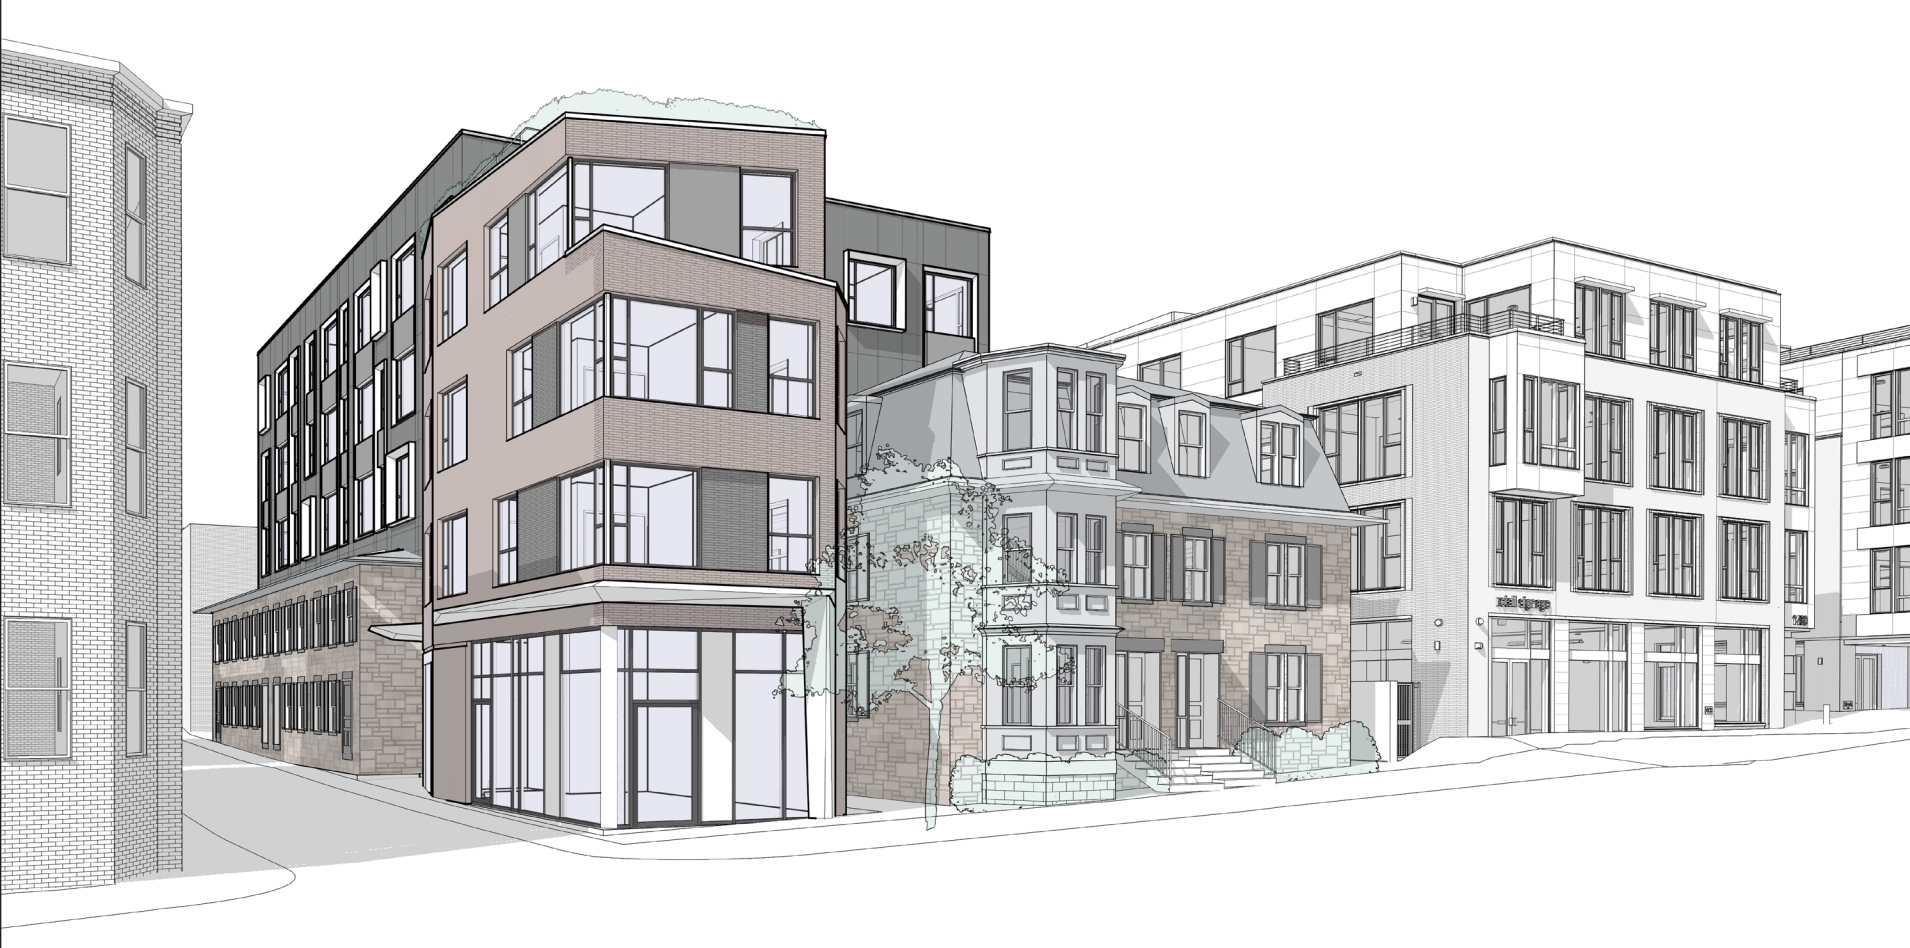 1470 tremont street savage properties residential retail mixed use development mission hill roxbury mbta orange line architect hacin associates rendering 2